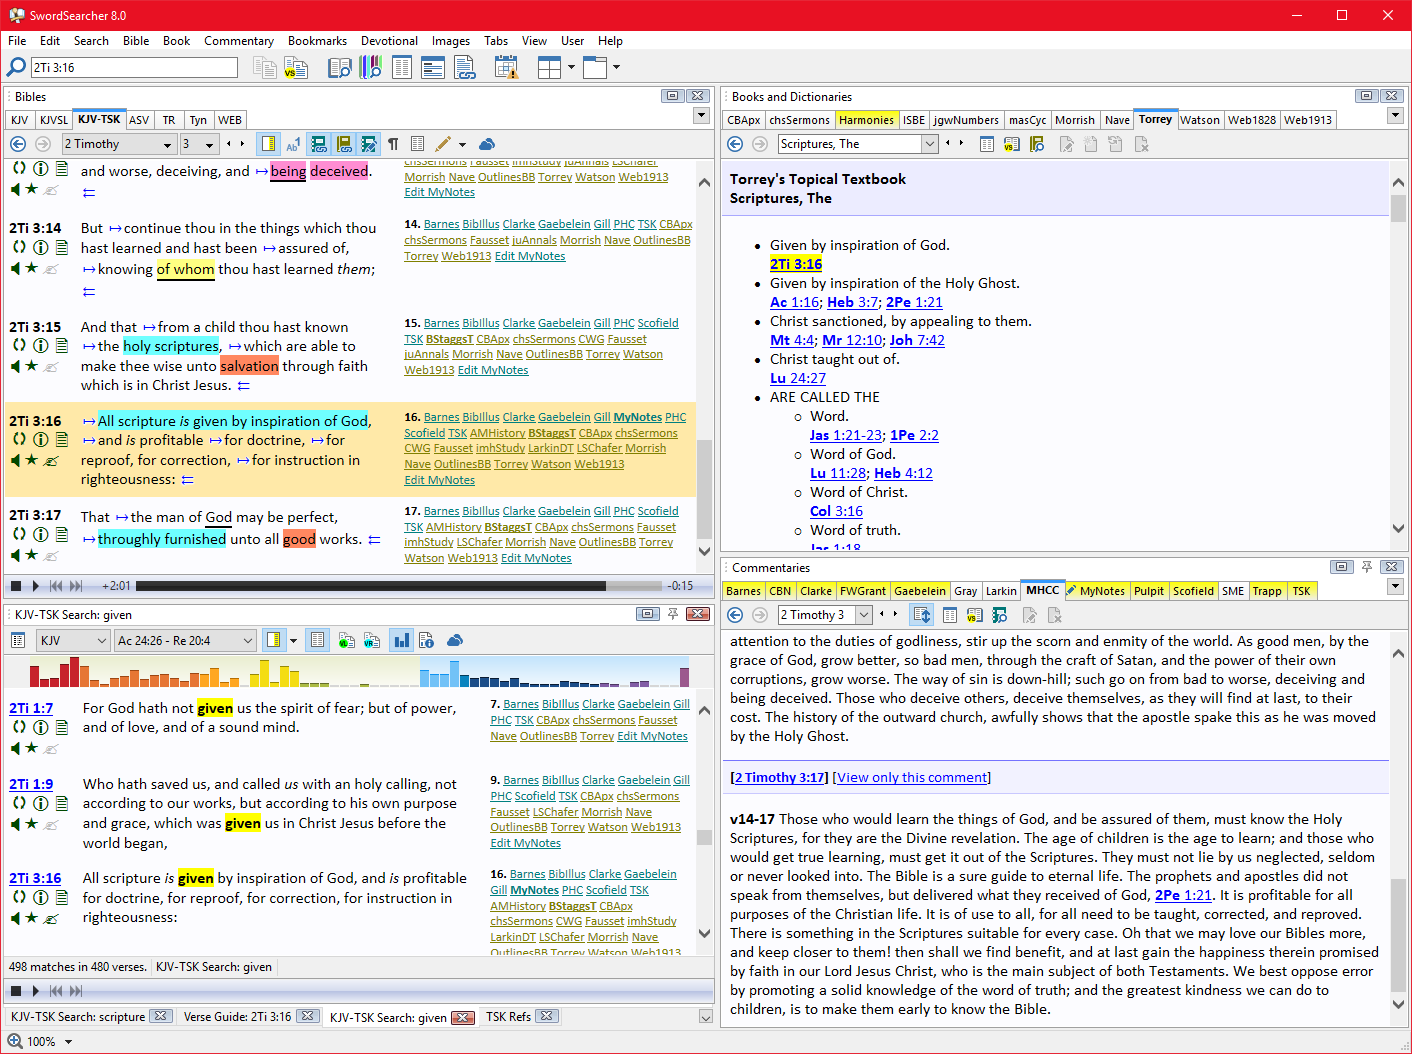 Download SwordSearcher Bible Software 6.2.2